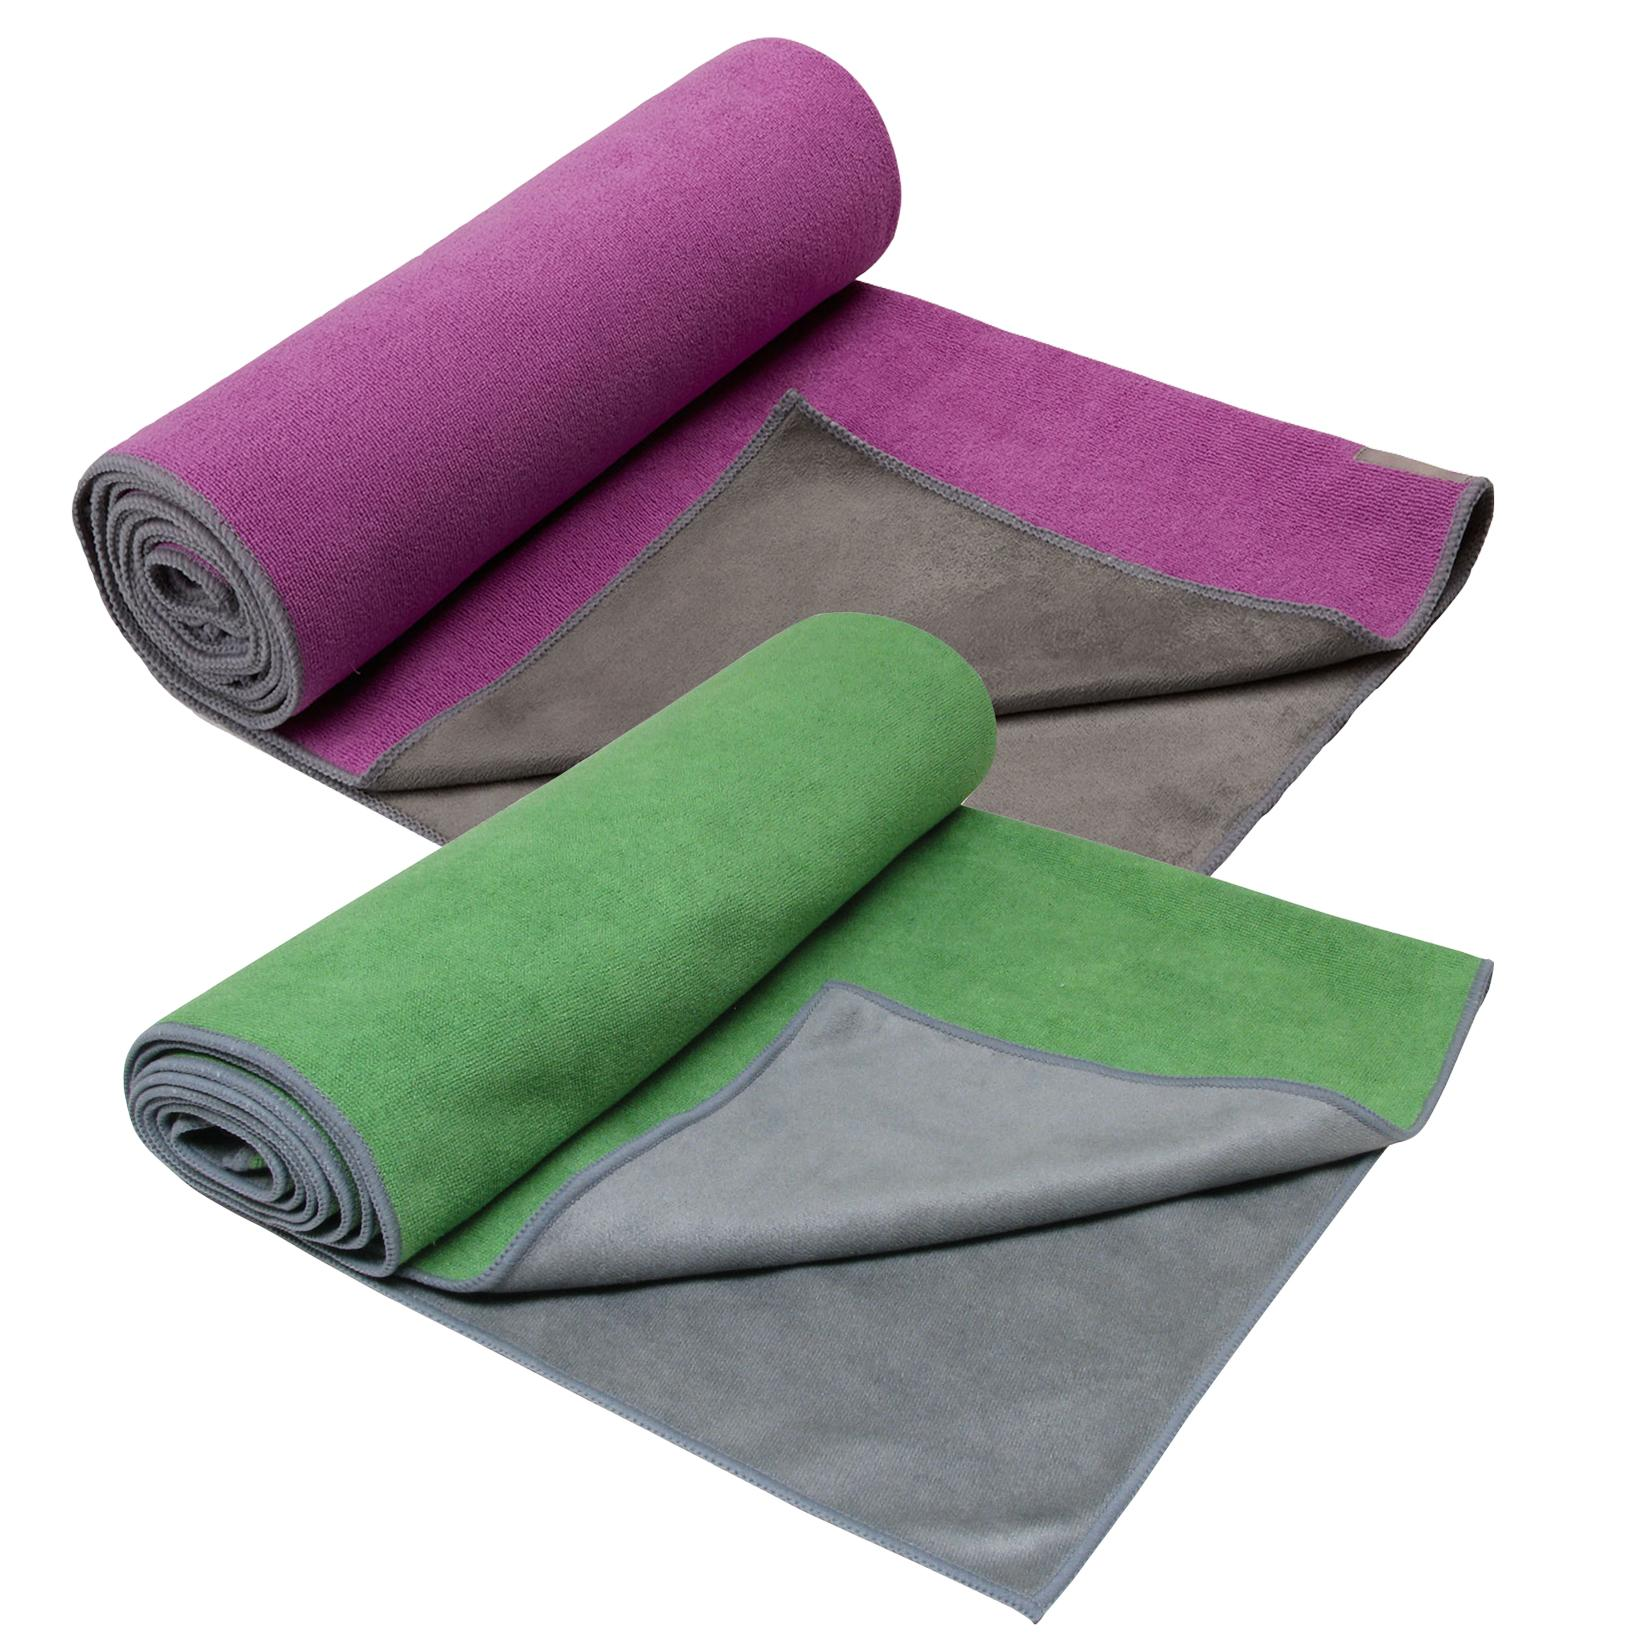 Amazon.com: Gaiam Dual-Grip Yoga Mat Towel (Green Vine